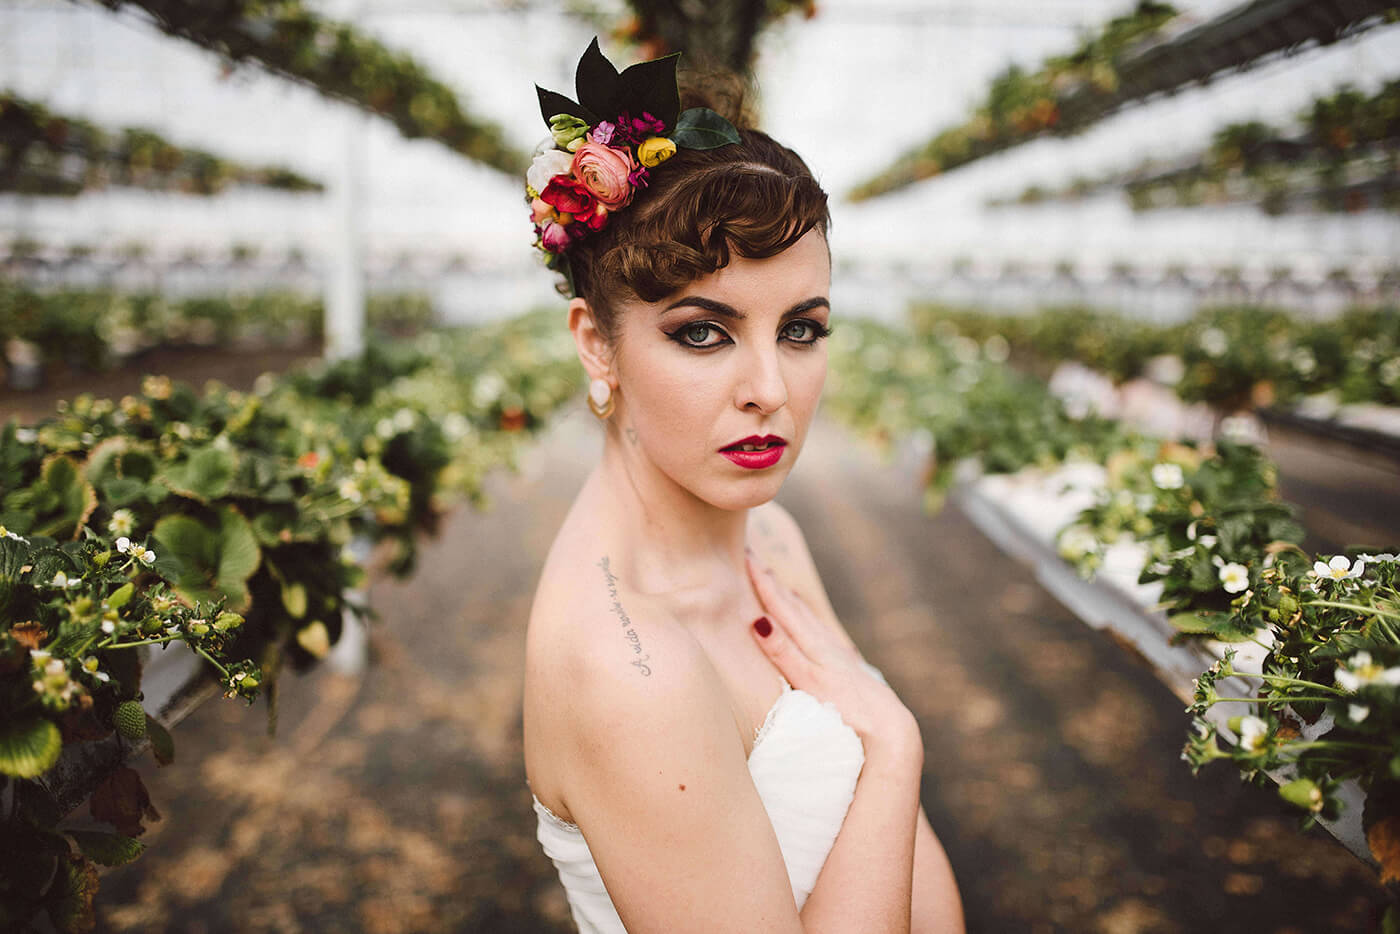 roma-organizacao-eventos-editorial-mid-century-modern-wedding-in-a-strawberry-field-10